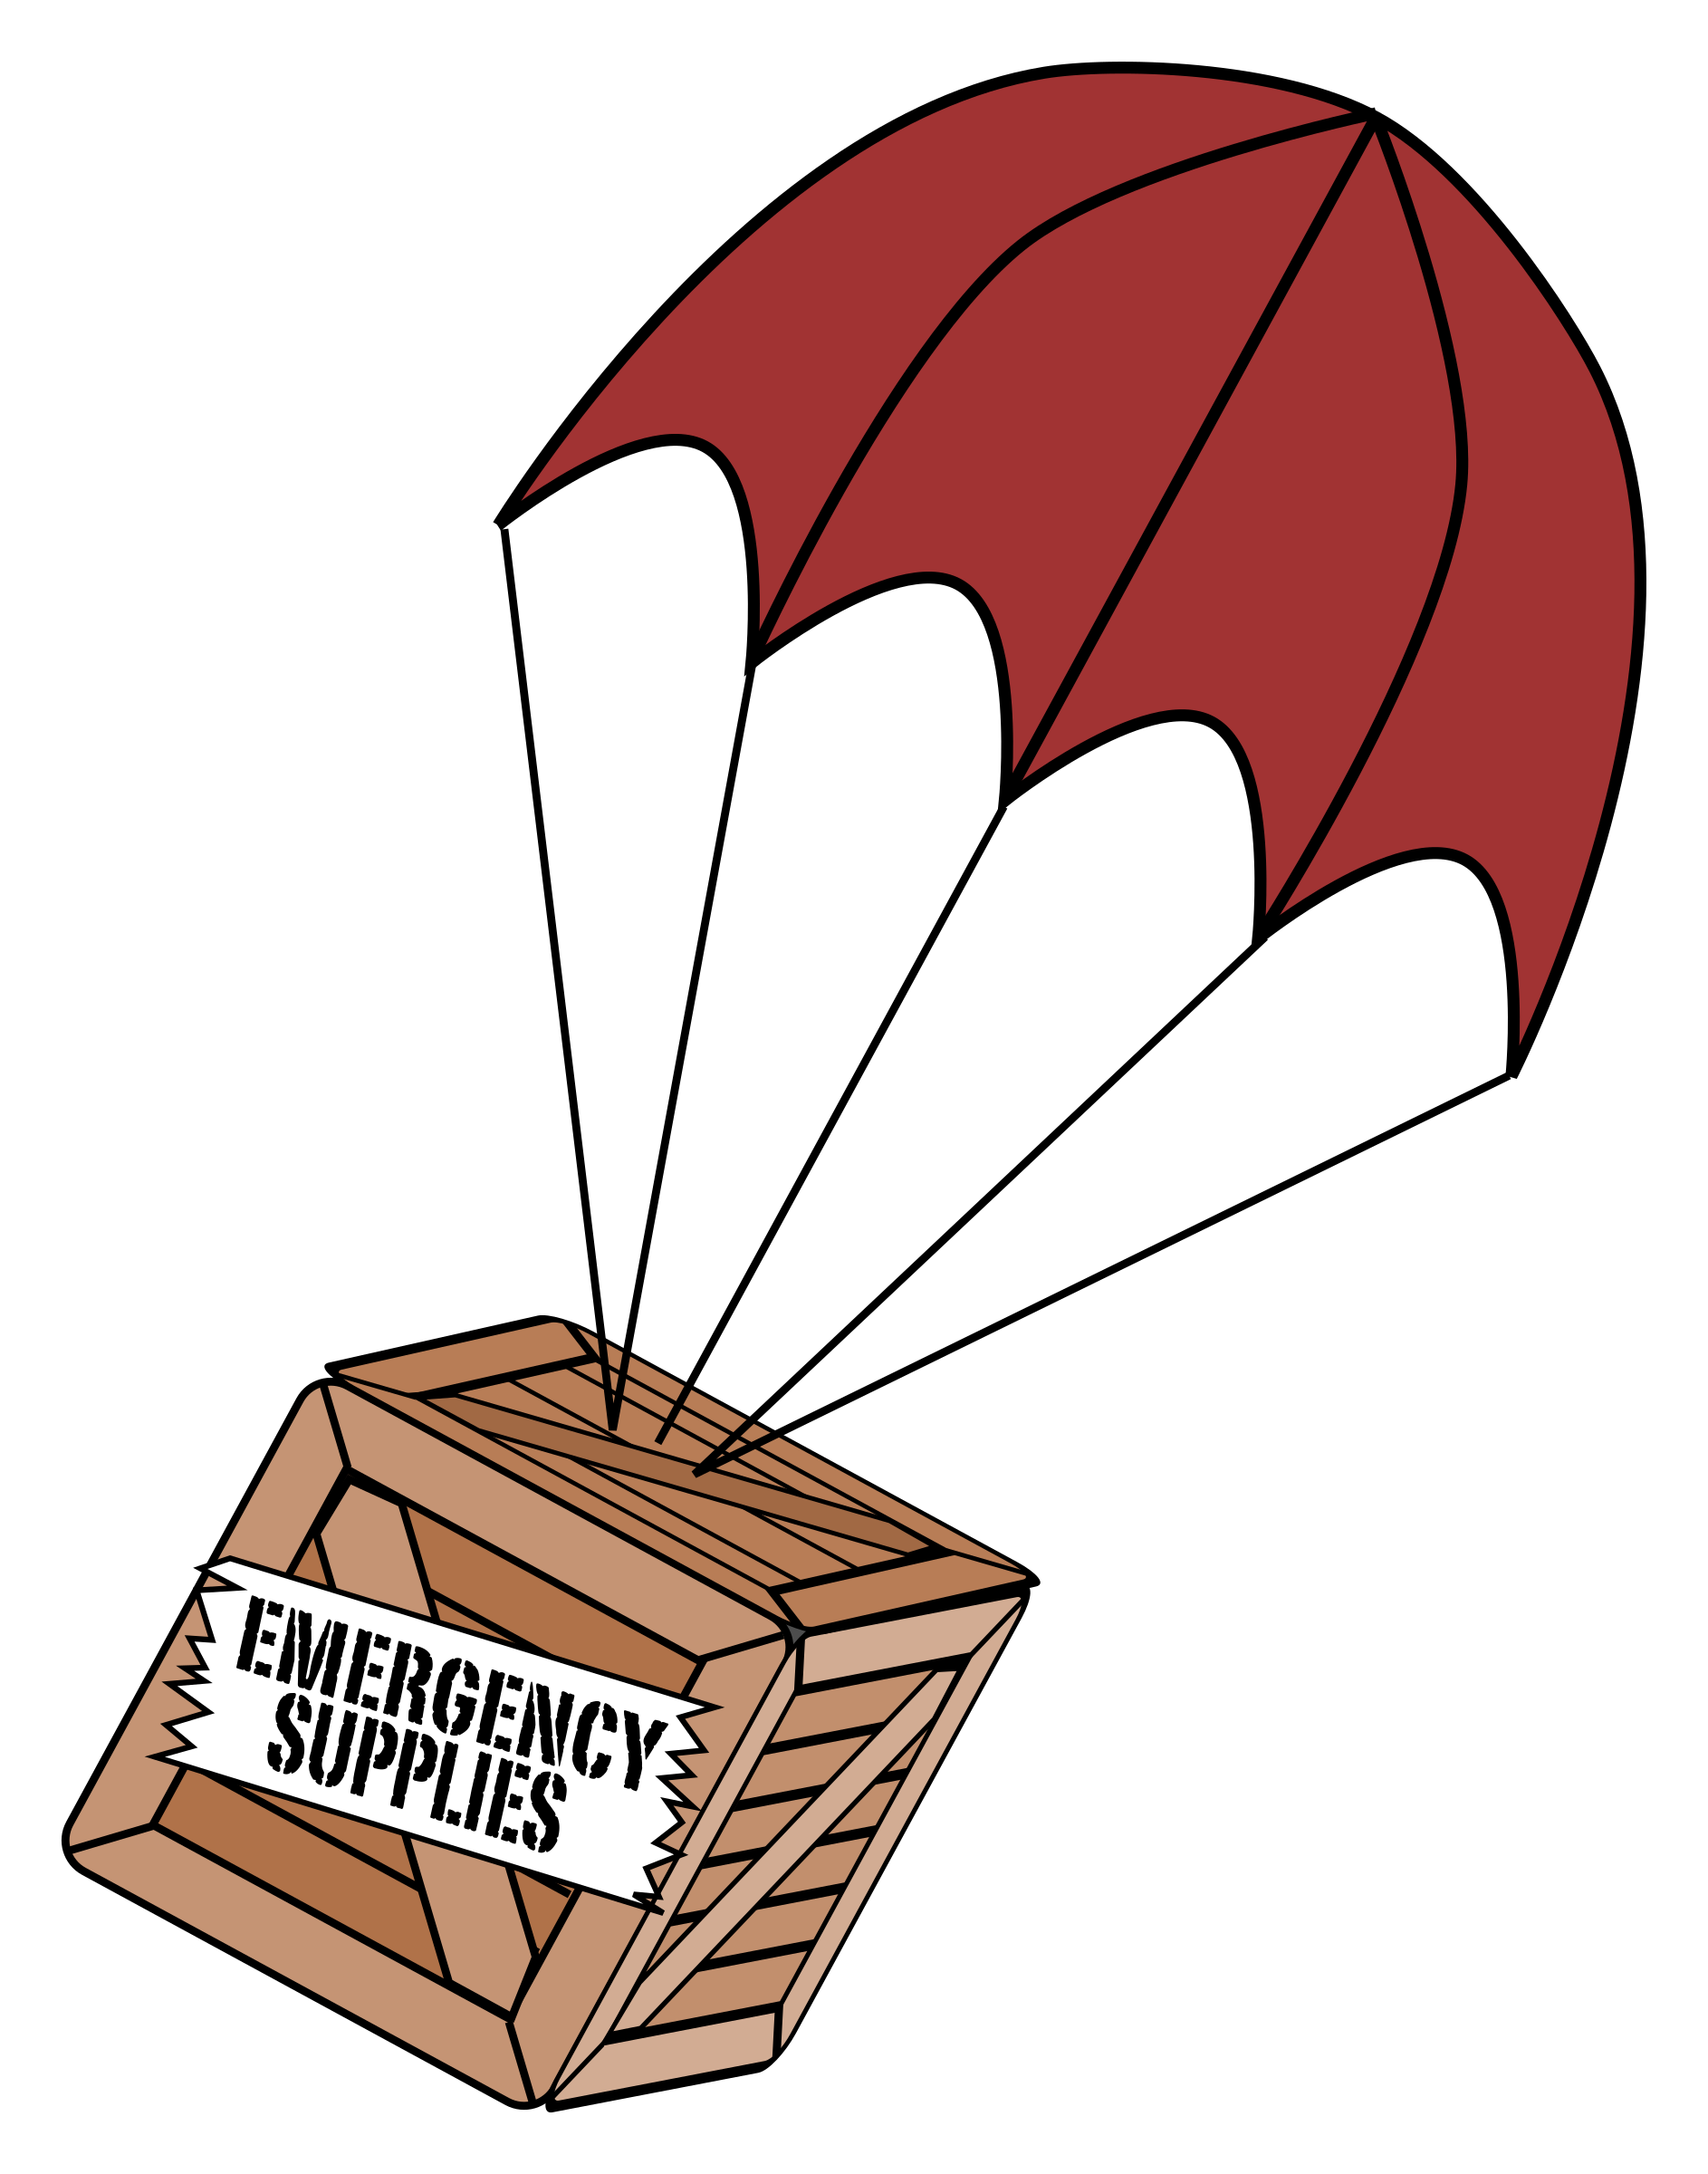 clip free stock Supplies boxchute big image. Binder clipart emergency.